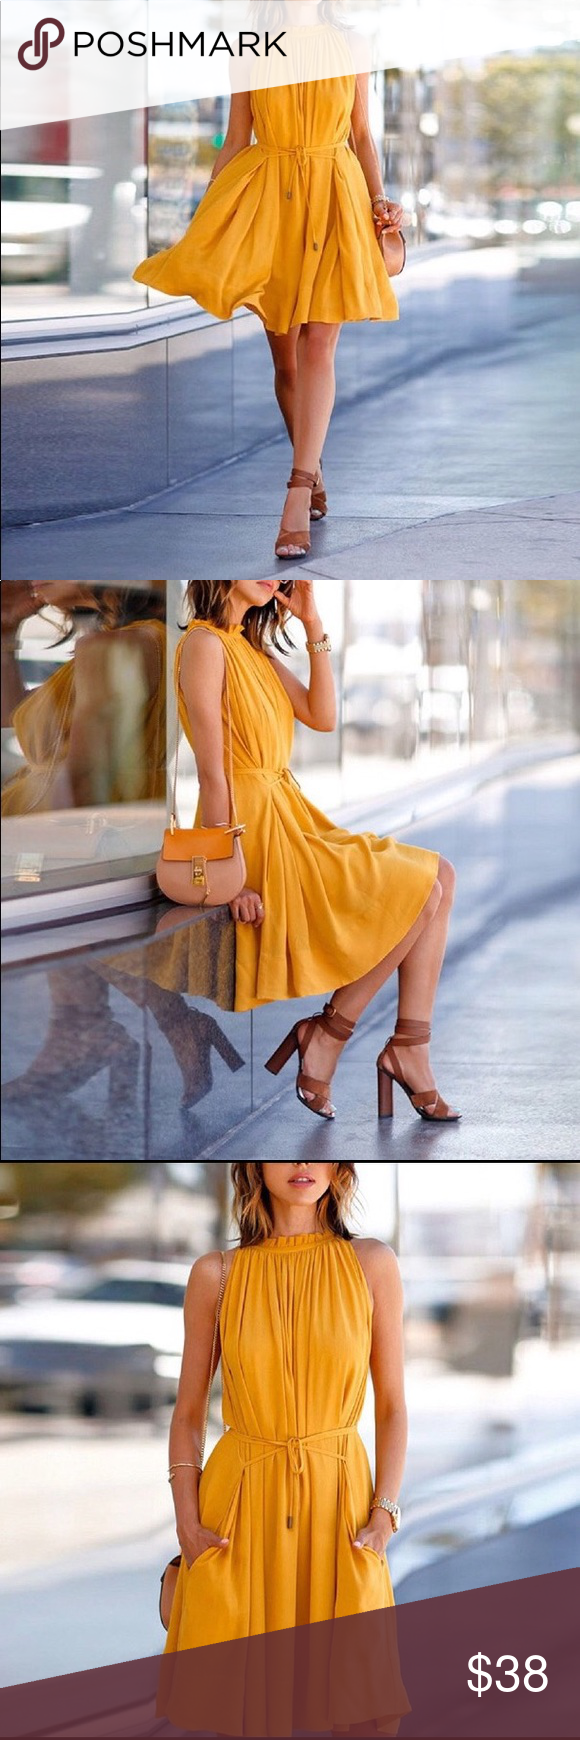 Sundresses Buy One Get One Free Womens Shift Dresses Dresses Women Cheap Dresses [ 1740 x 580 Pixel ]